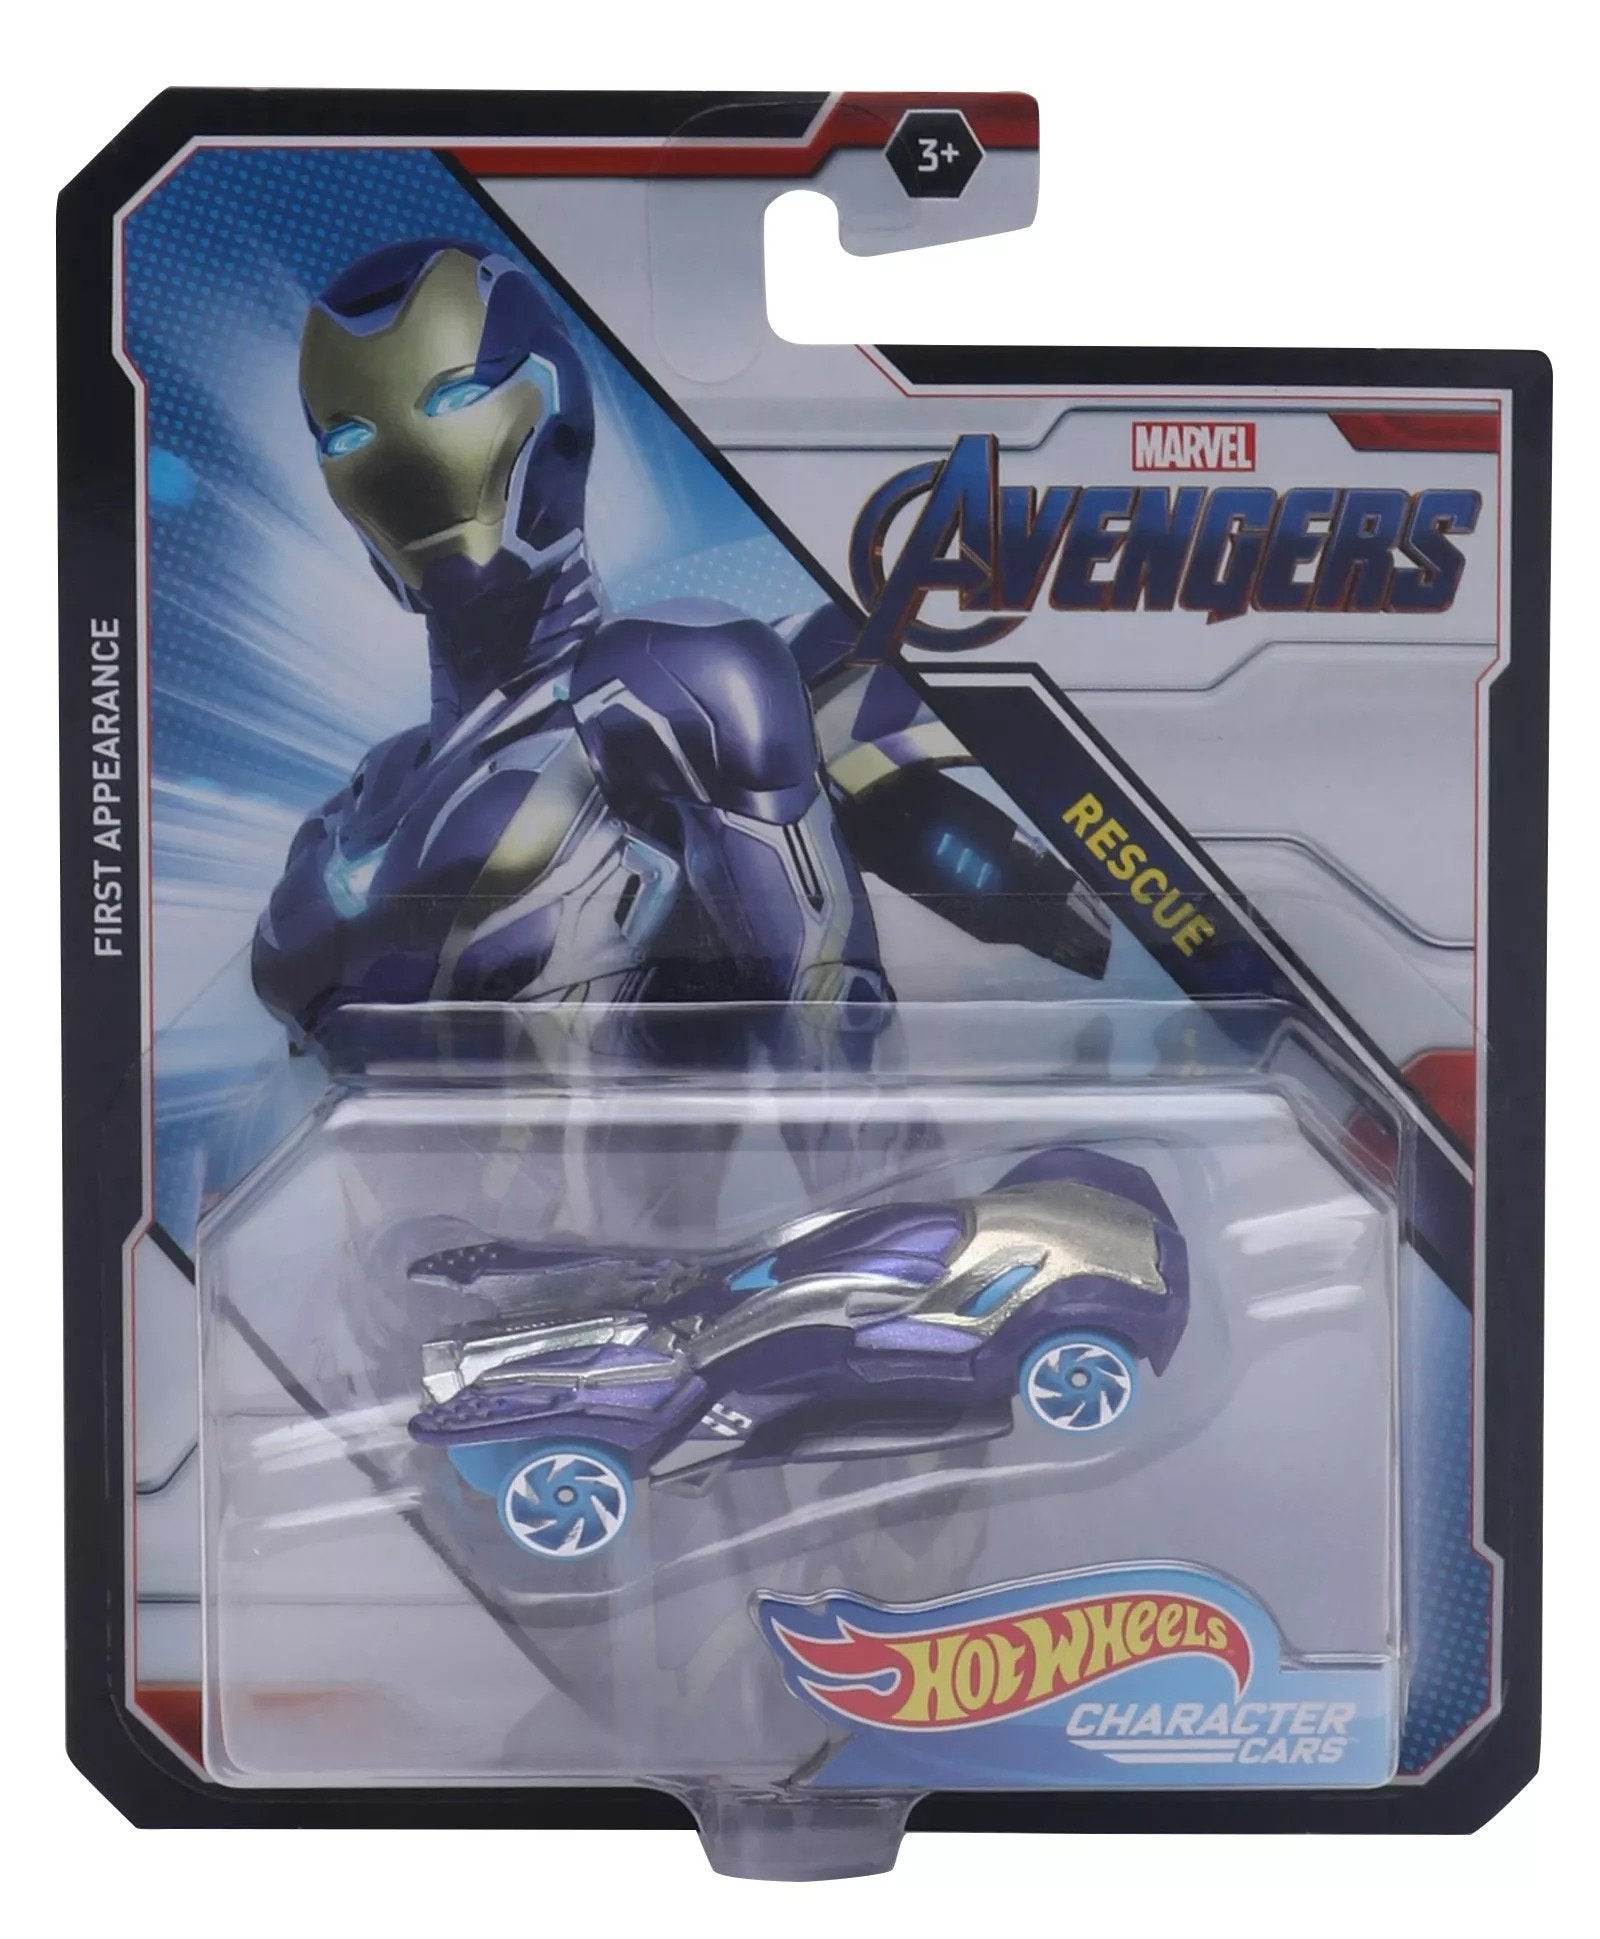 Avengers Rescue 1:64 Scale Die-Cast Car by Hot Wheels